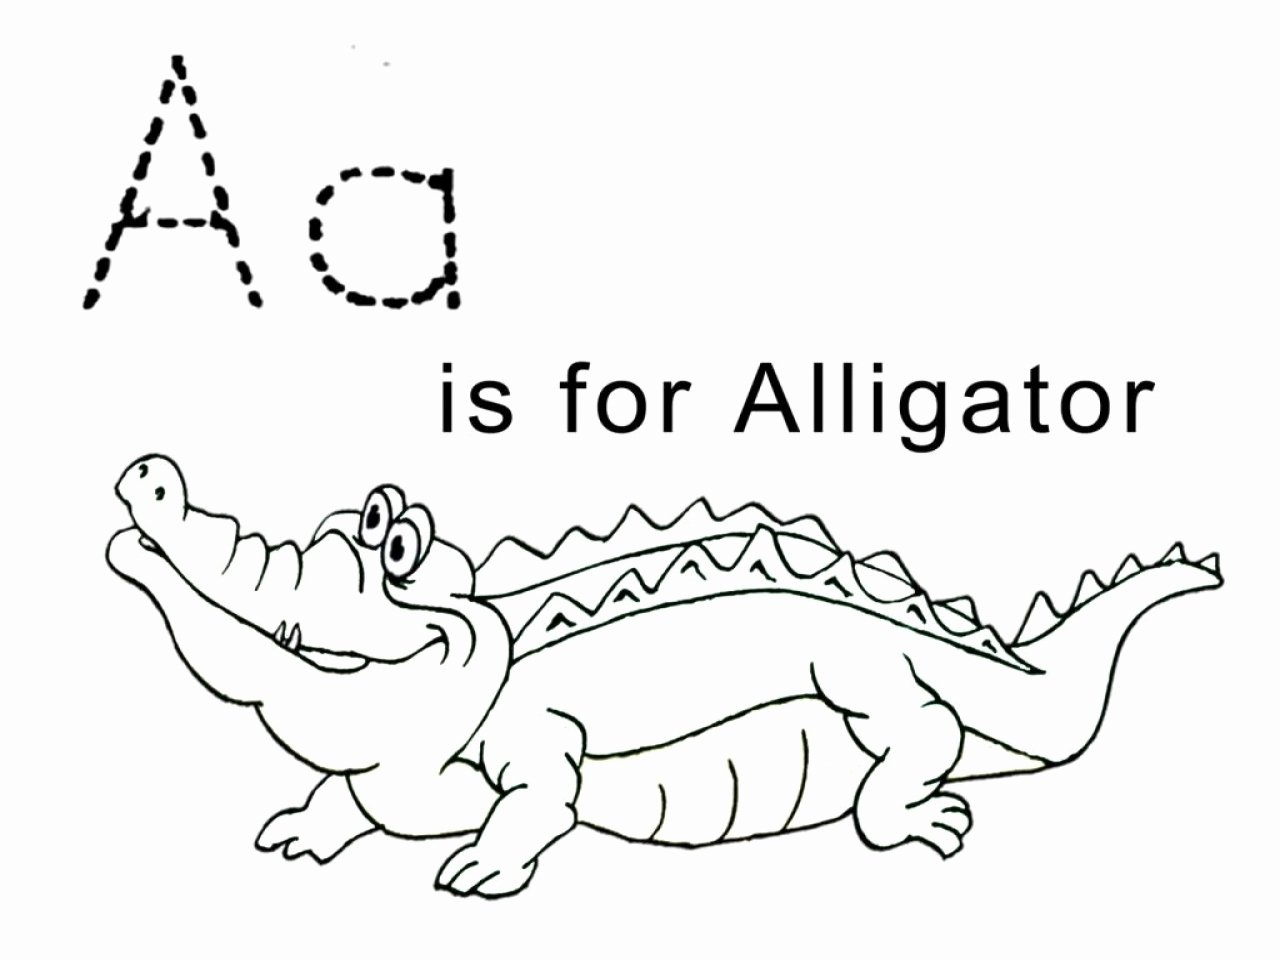 Alligator Template Printable Inspirational Baby Alligator Coloring Pages Easy Grig3